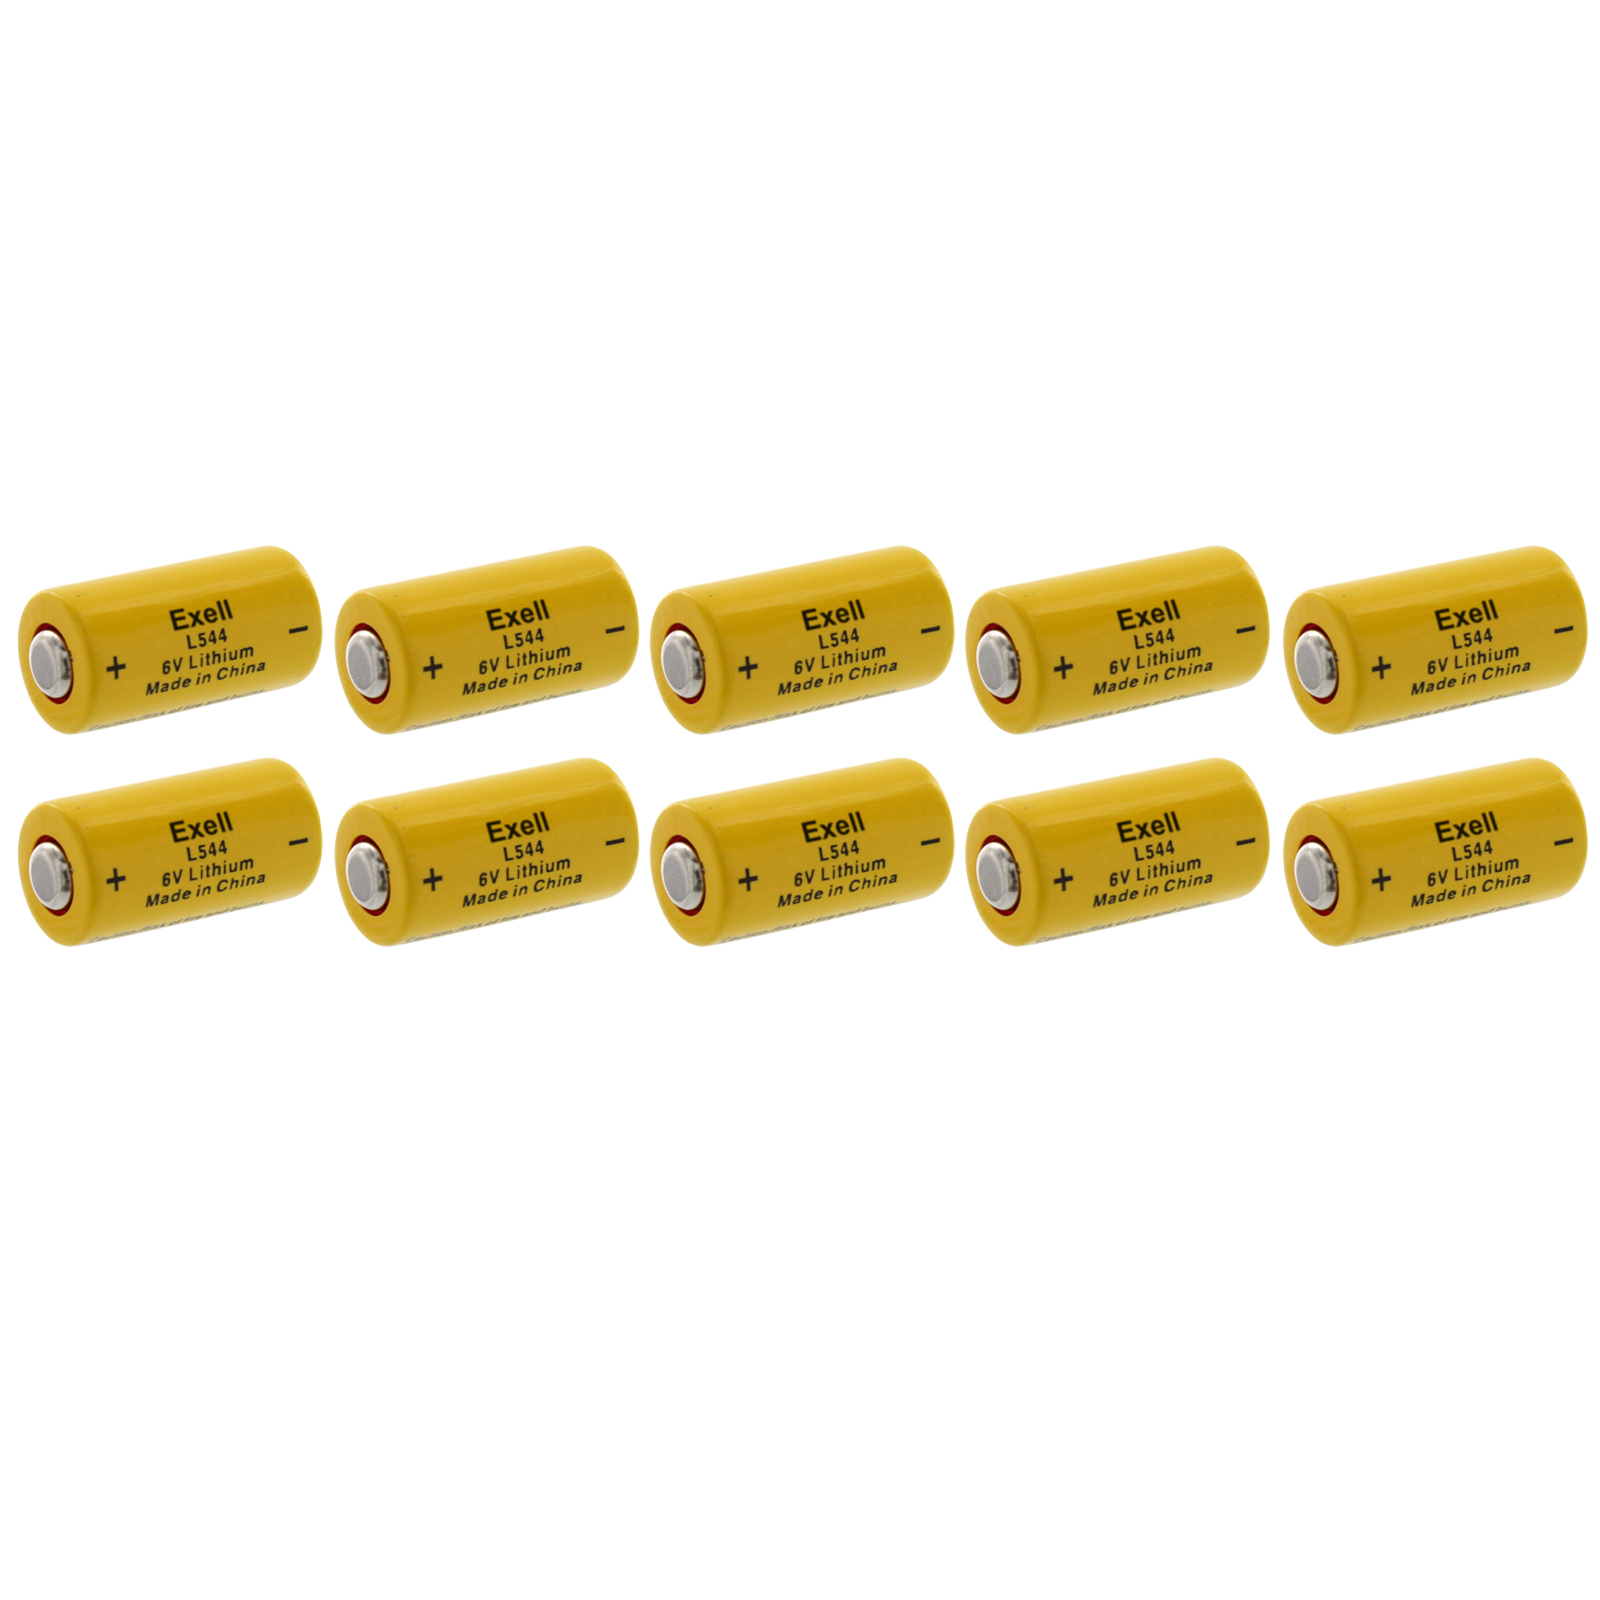 10x Exell L544 6V Lithium Battery Replaces K28L V28PXL 2C...